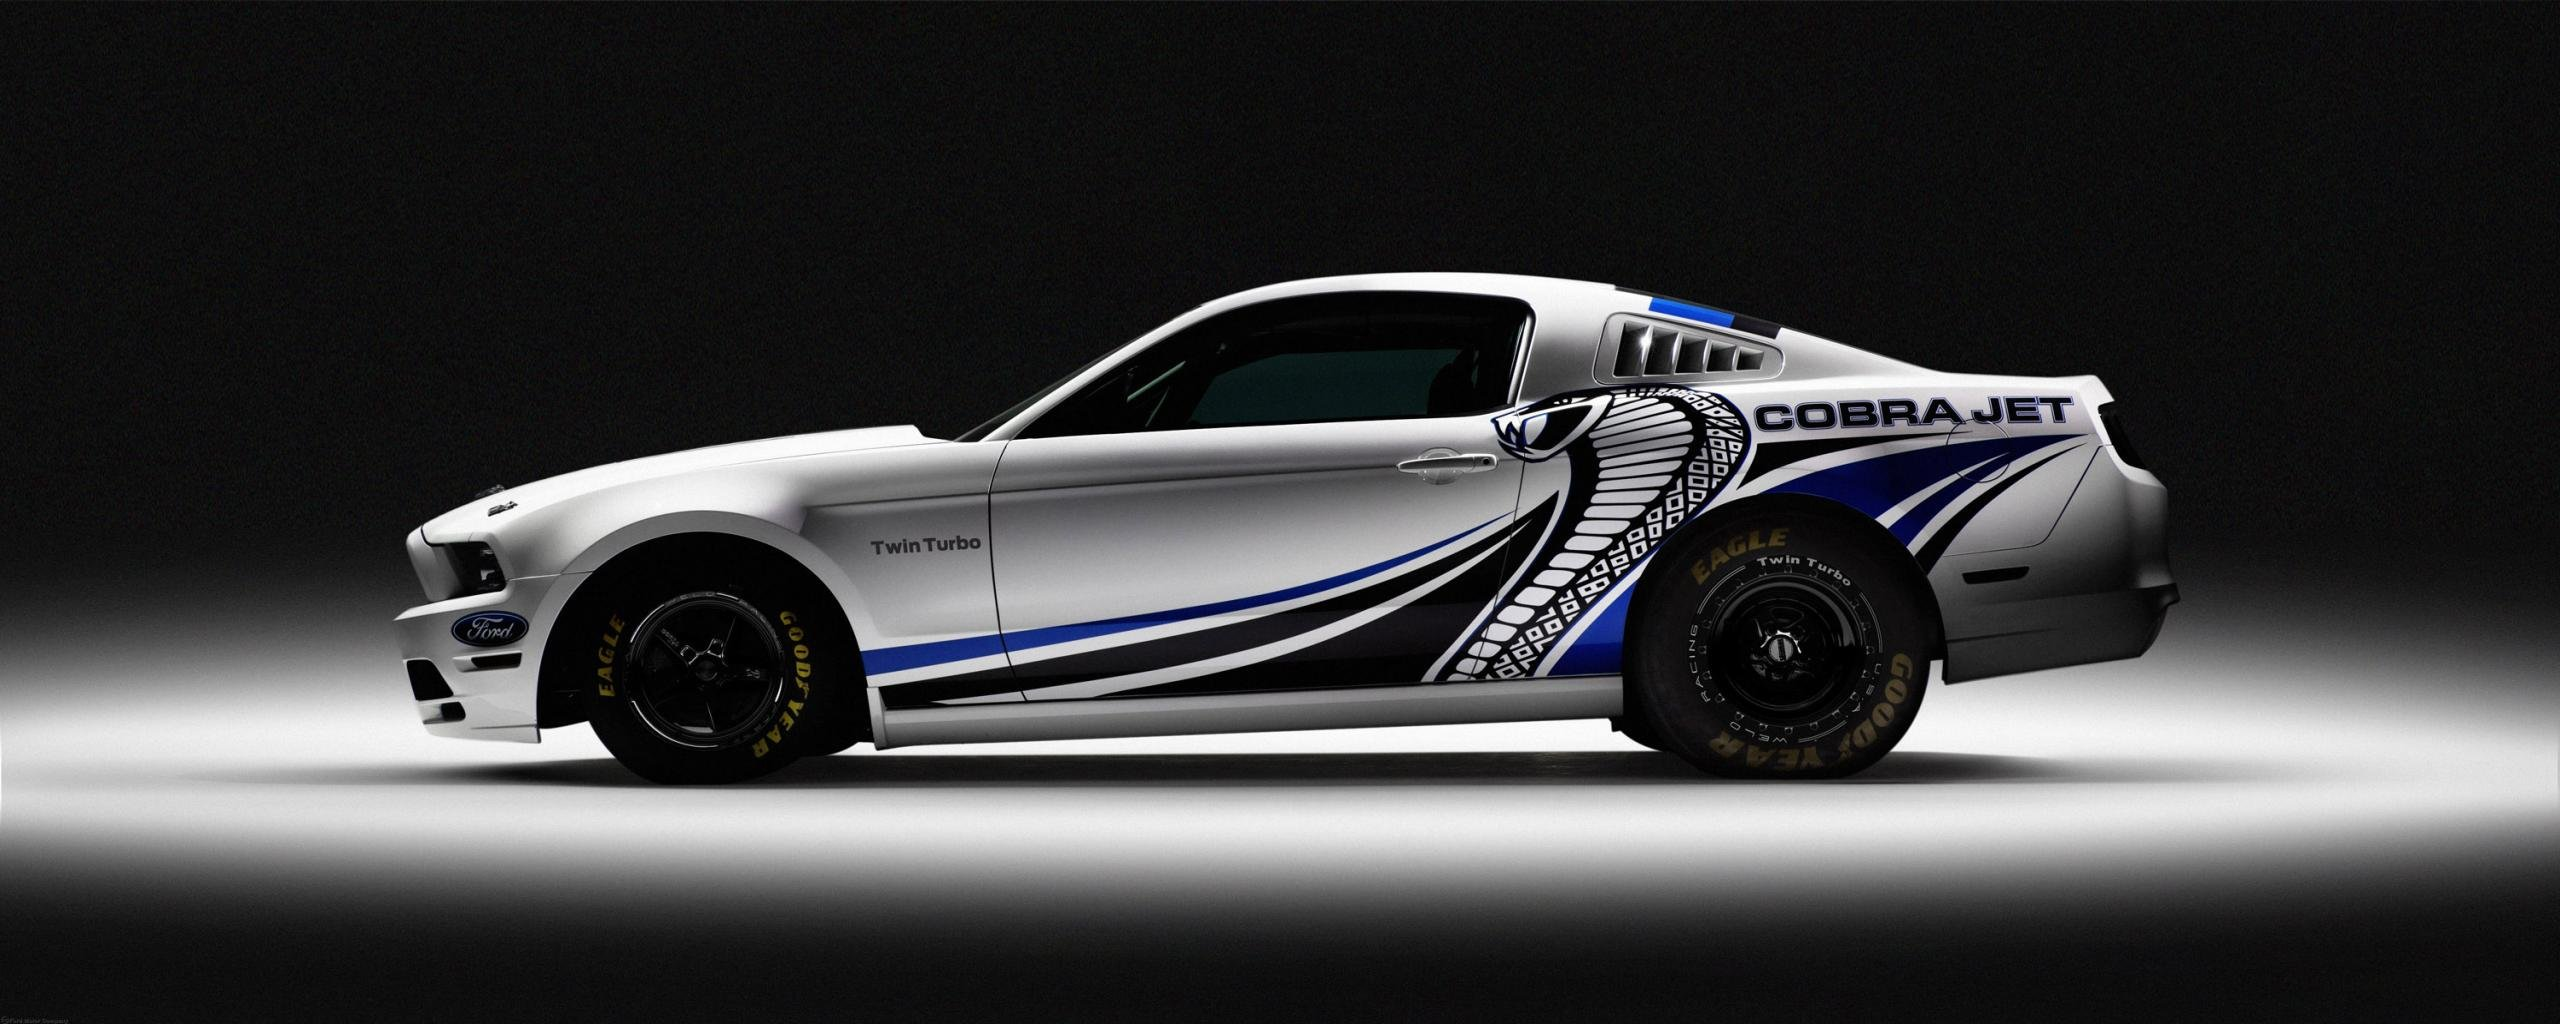 Download Dual Monitor 2569x1024 Ford Mustang Cobra Jet Twin Turbo